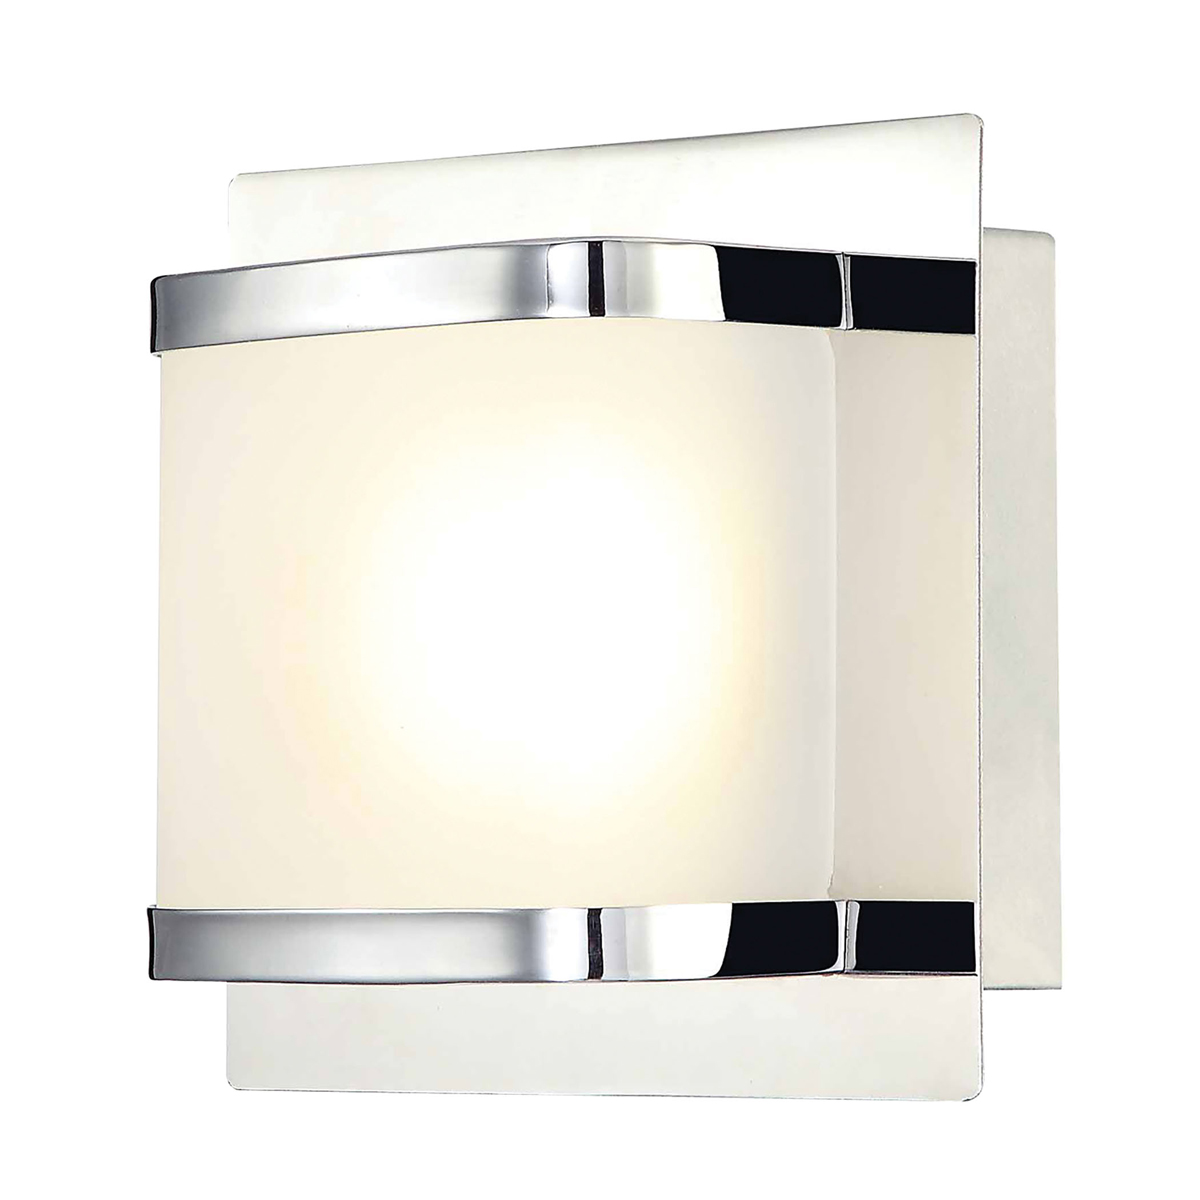 Vanity Led Fixtures : Alico Lighting (BVL4001-10-15) Bandeau 1 Light LED Vanity Fixture in Chrome